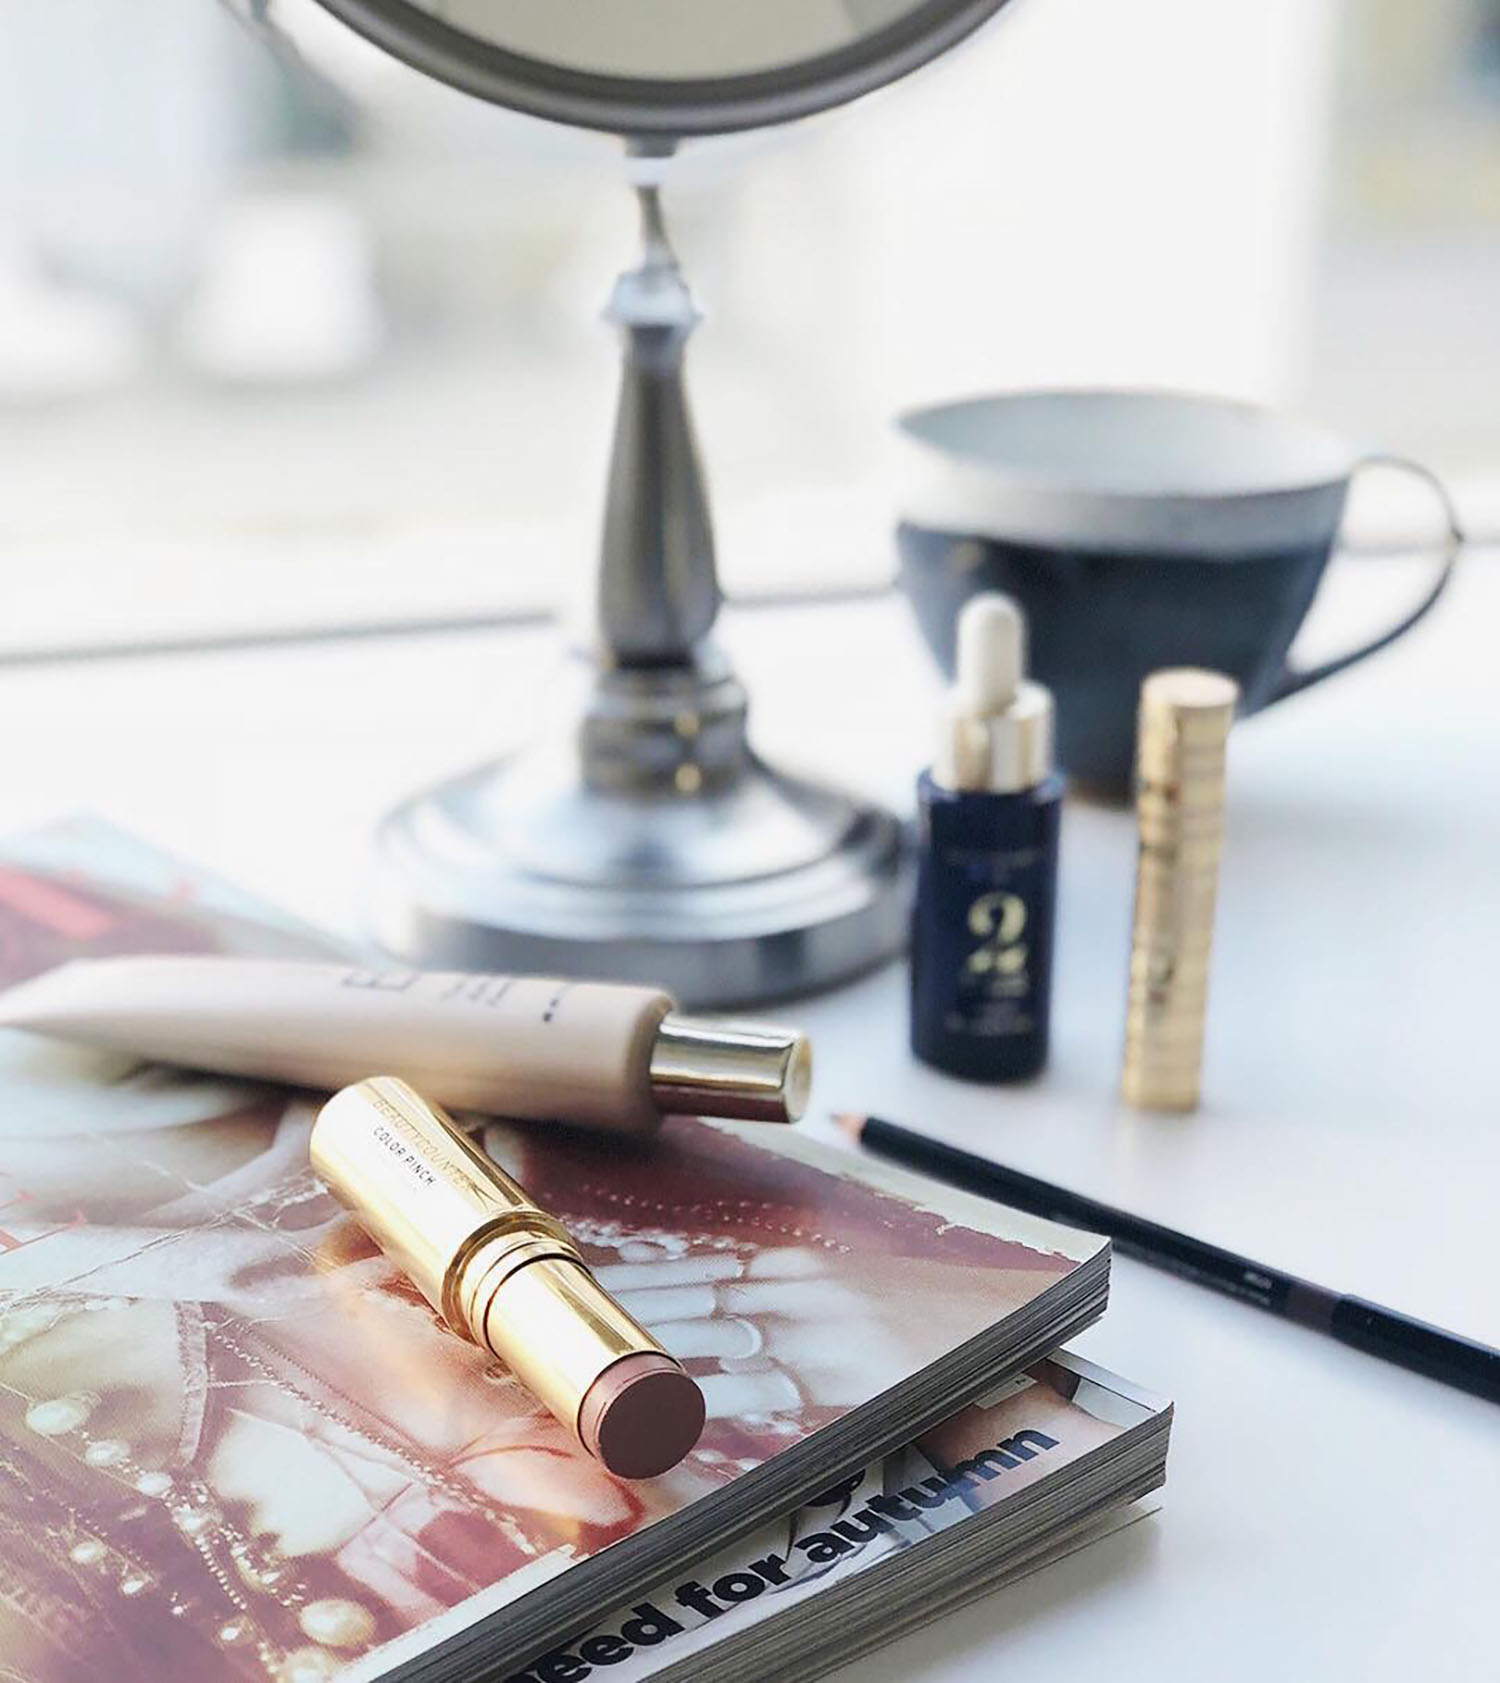 Making Cleaner and Safer Beauty Choices on Brighter Darling